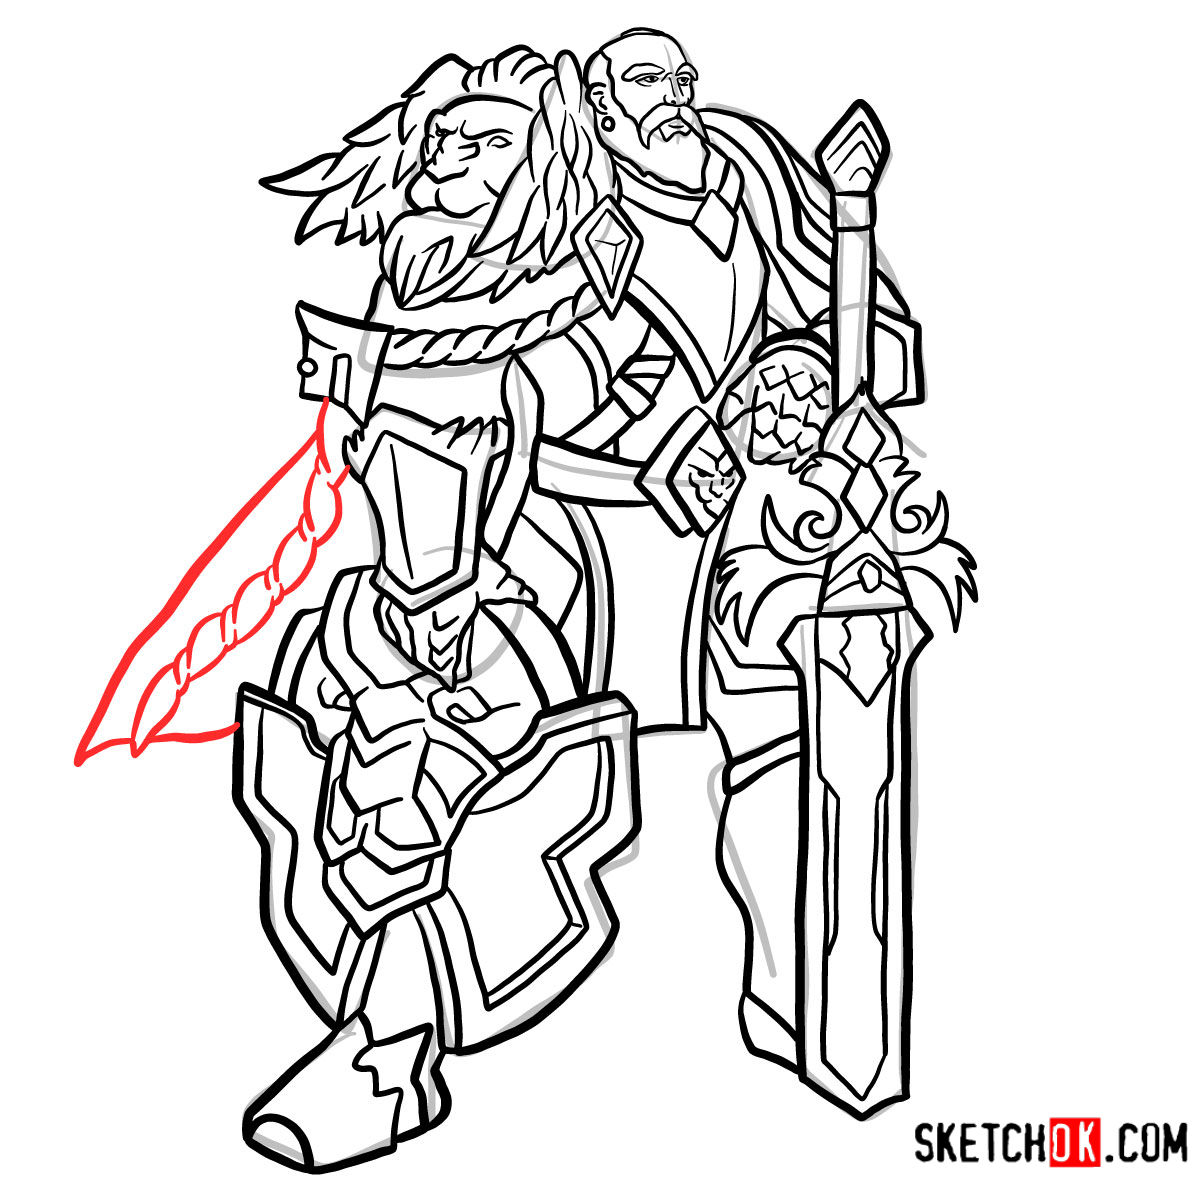 How to draw Lord Anduin Lothar | World of Warcraft - step 17